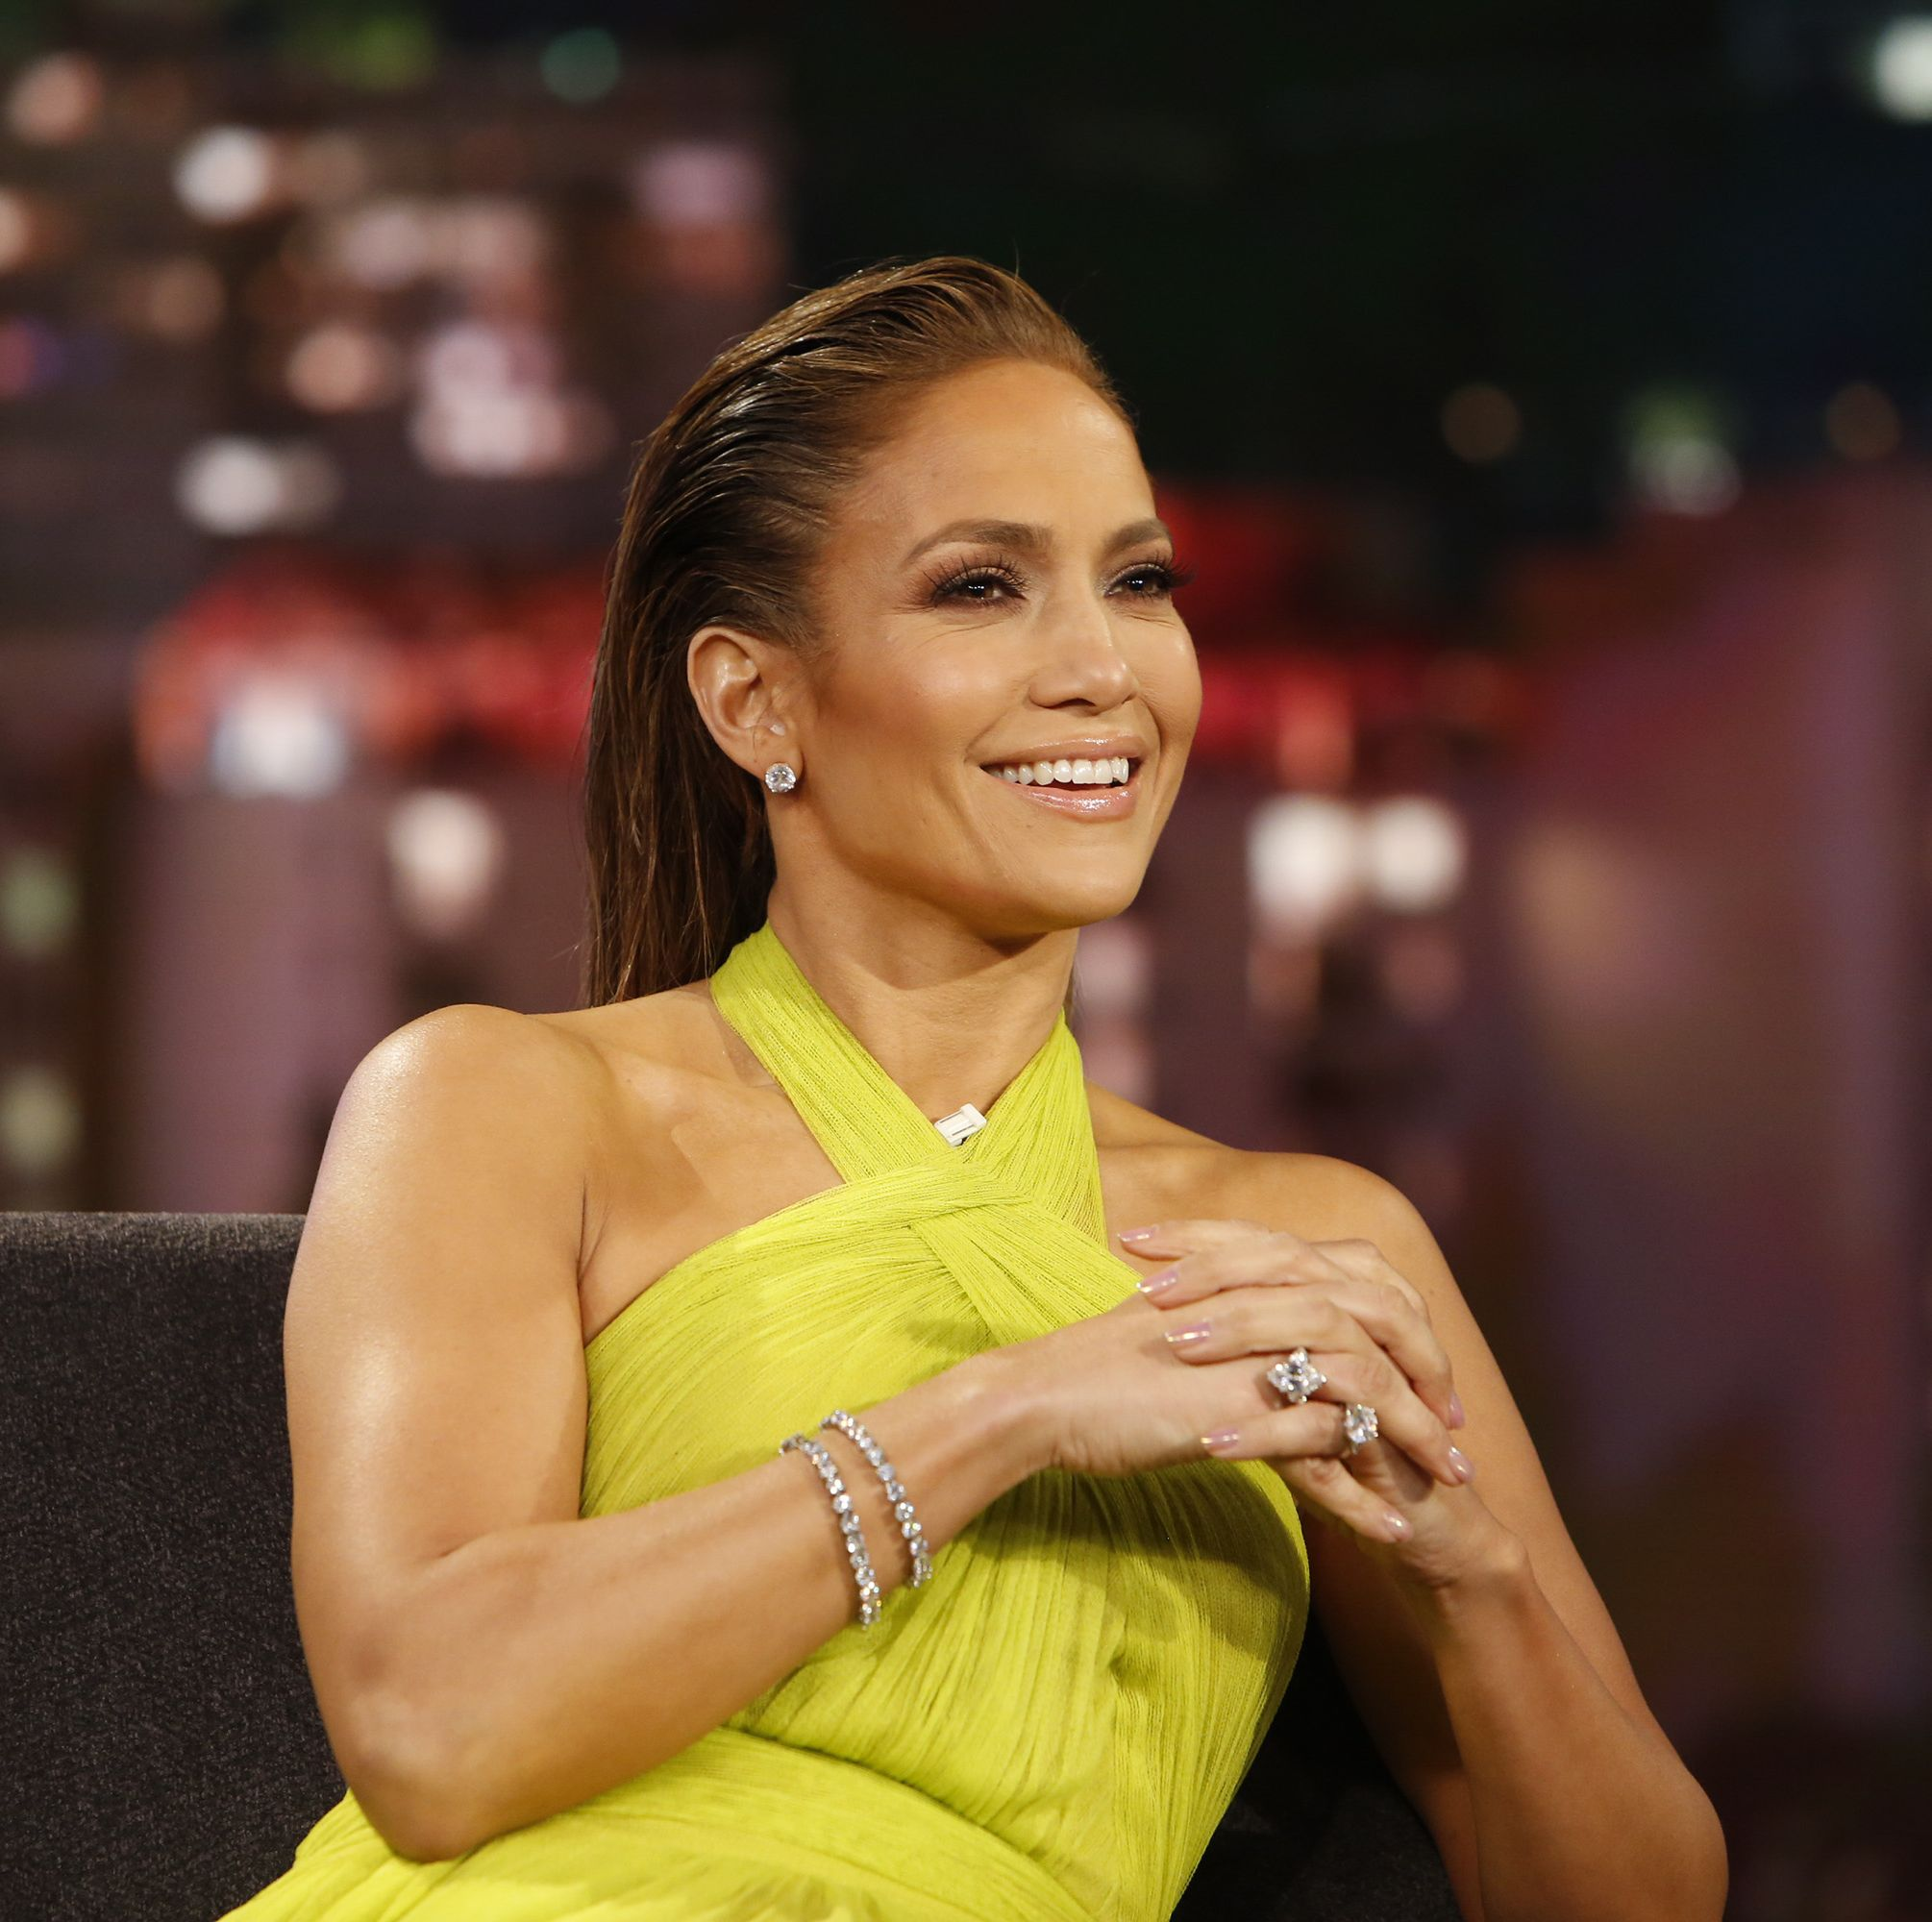 Jennifer Lopez Practices Pole Dancing For Her New Movie And The Videos Are Fire